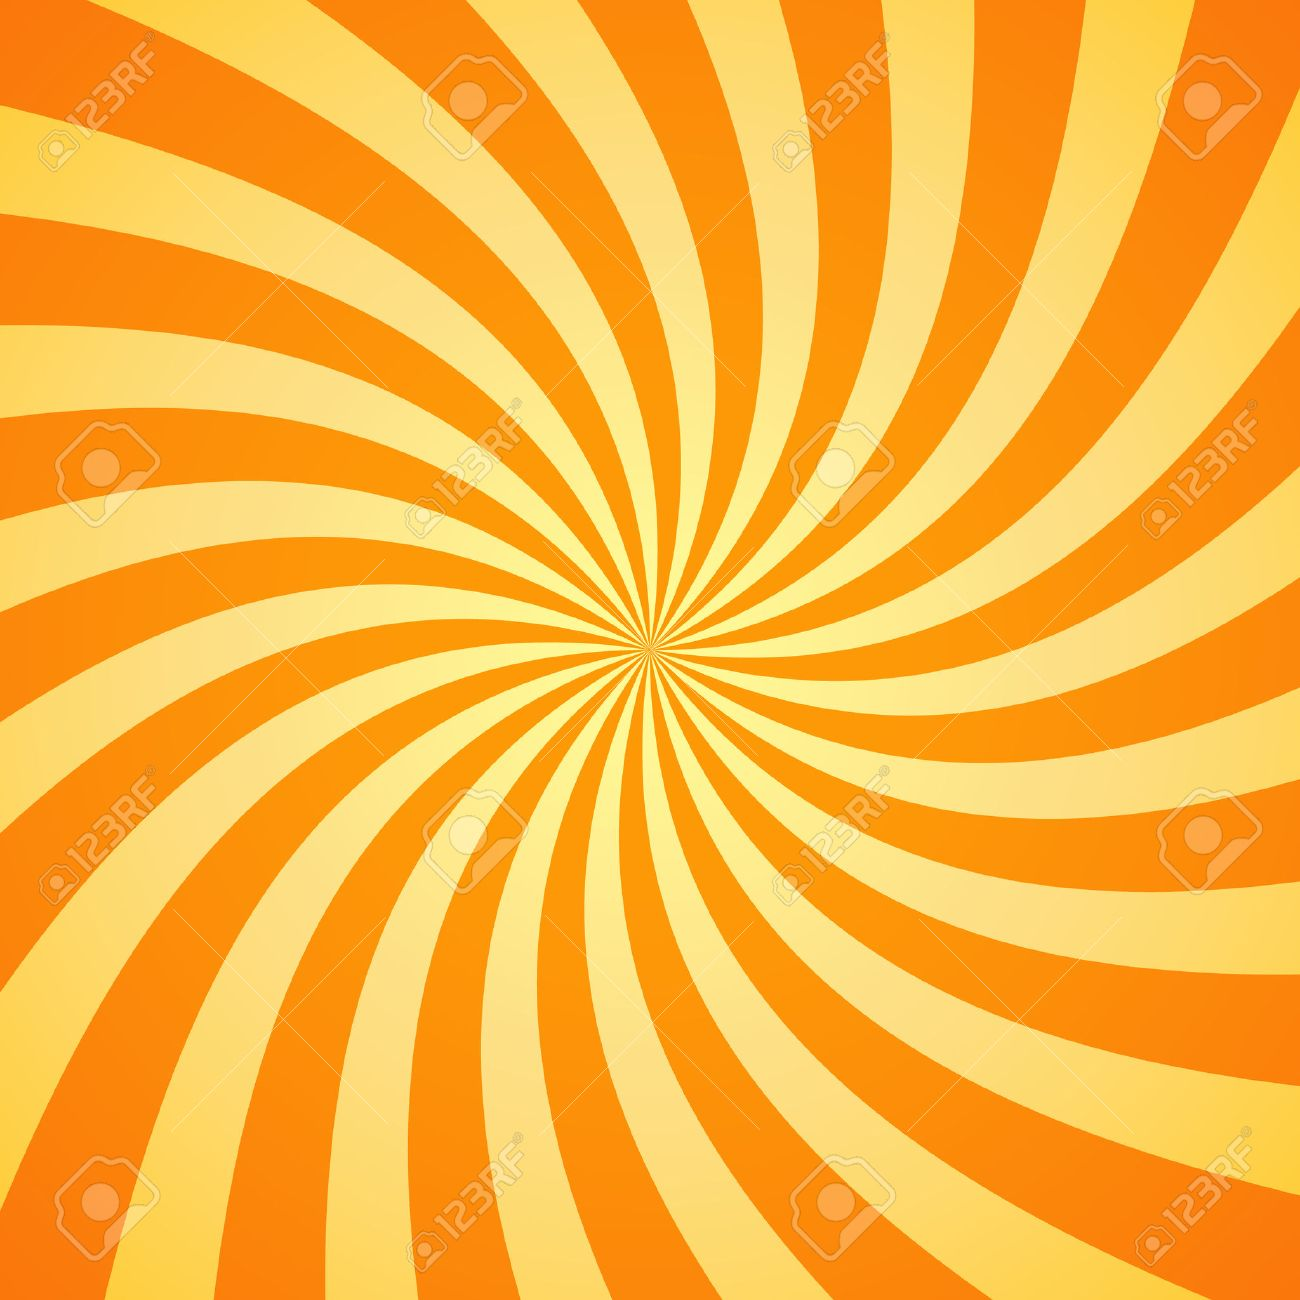 Swirling radial pattern background. Vector illustration for swirl design. Vortex starburst spiral twirl square. Helix rotation rays. Converging psychadelic scalable stripes. Fun sun light beams. - 53984882